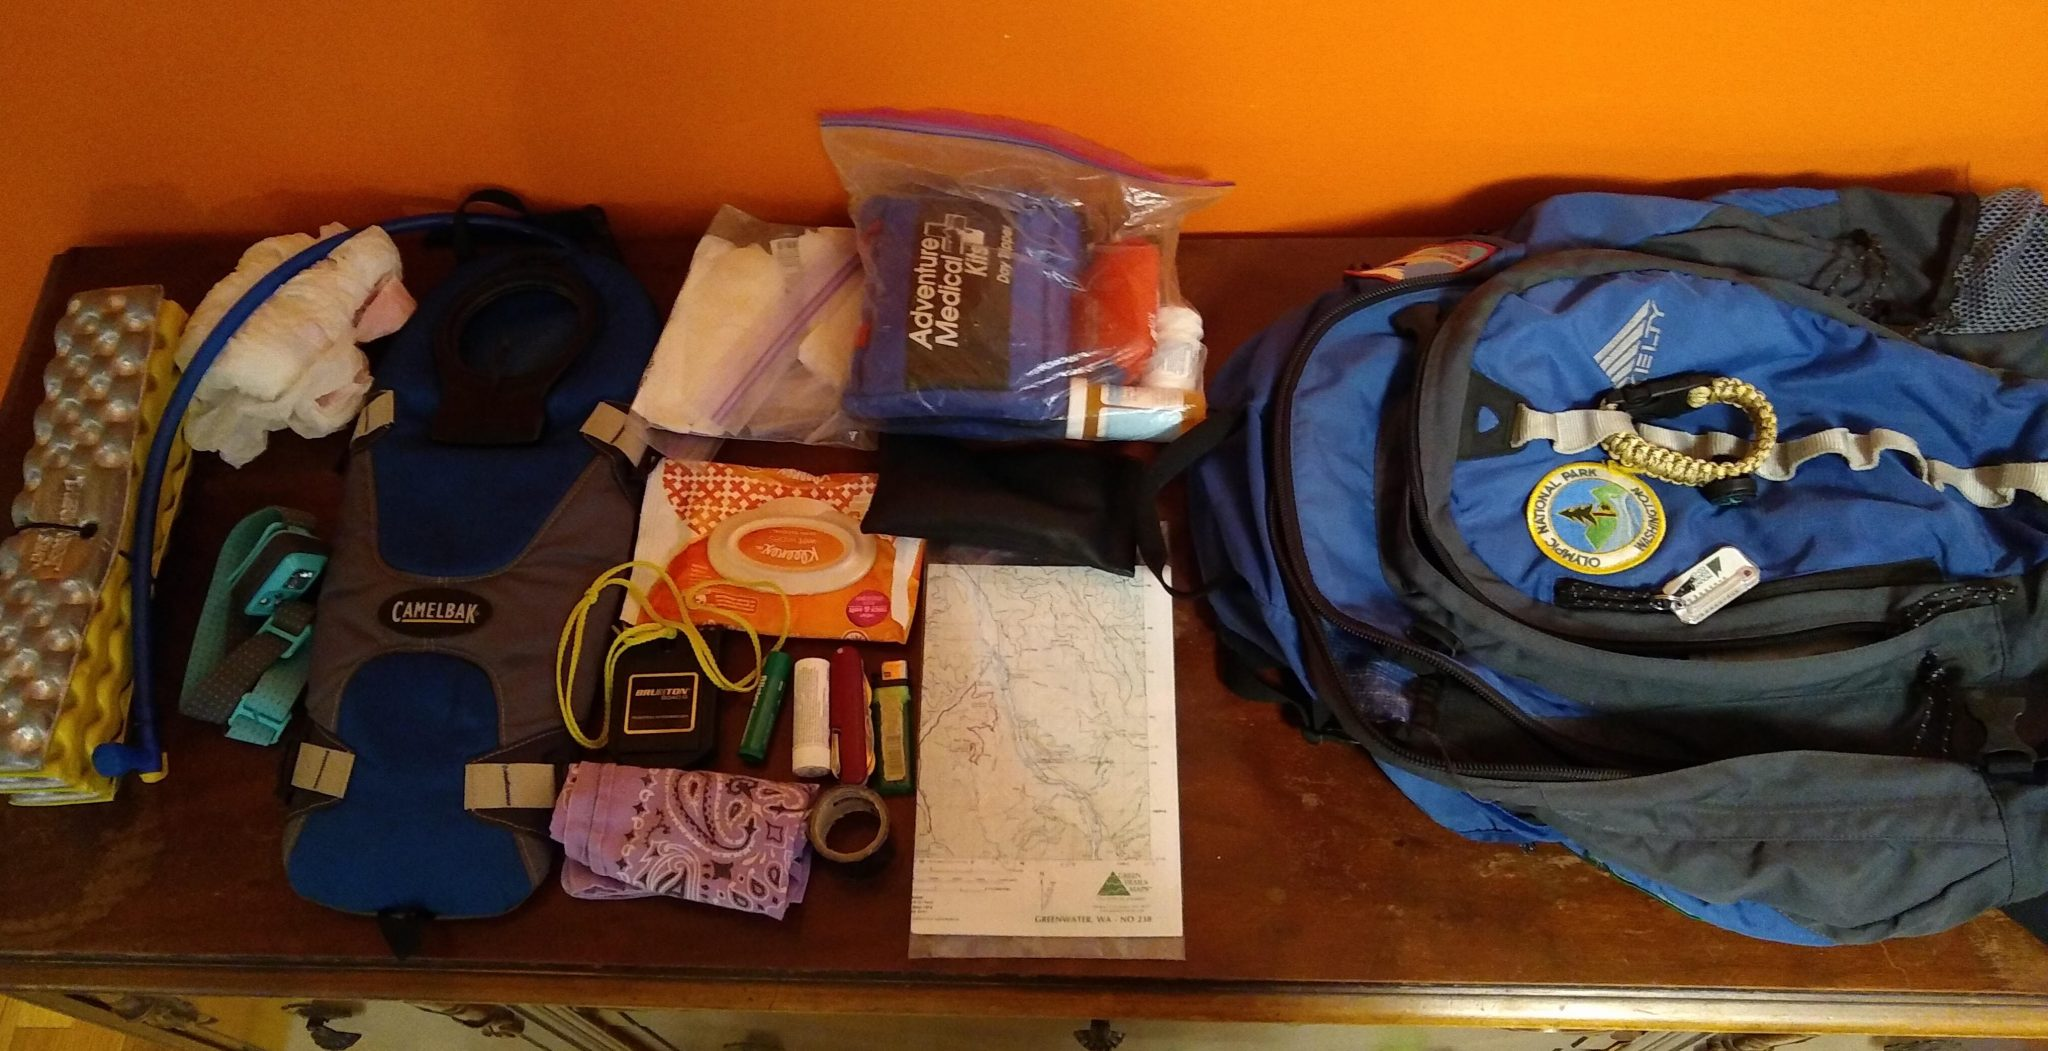 A backpack and some of it's contents spread out on a table including a map, first aid kit, water bladder, headlamp, bandana and plastic bag.